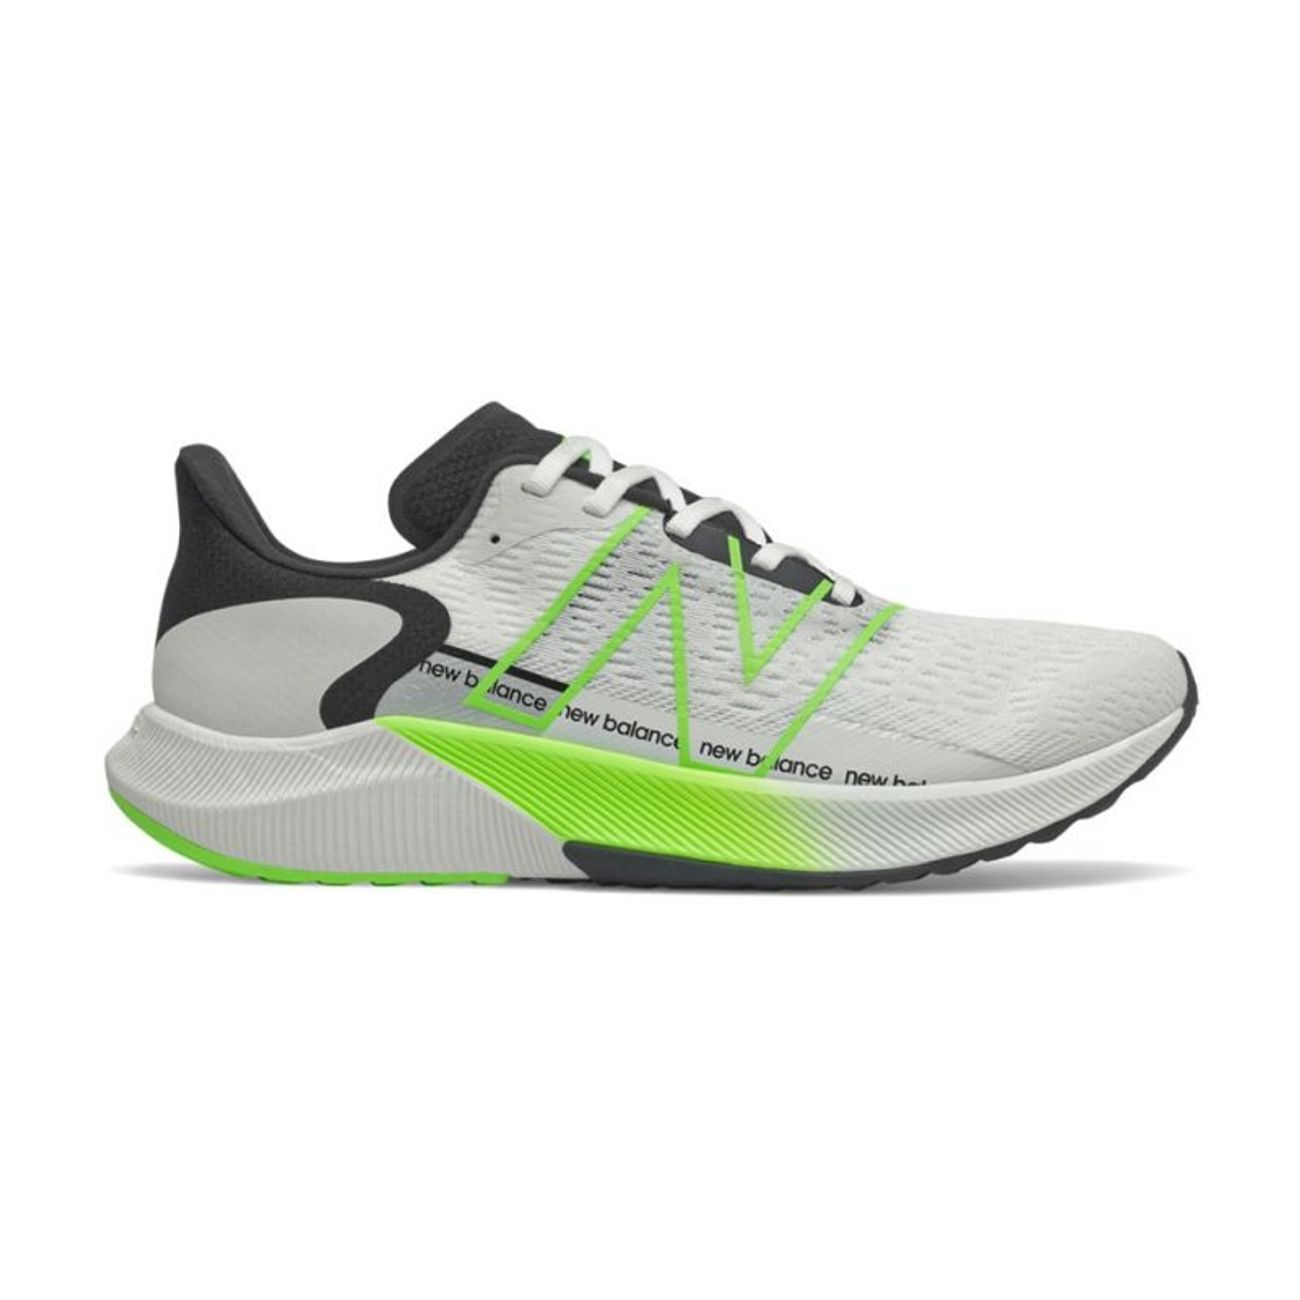 running homme NEW BALANCE NEW BALANCE Mfcpr D Trend Fuelceli Propel Chaussure Homme